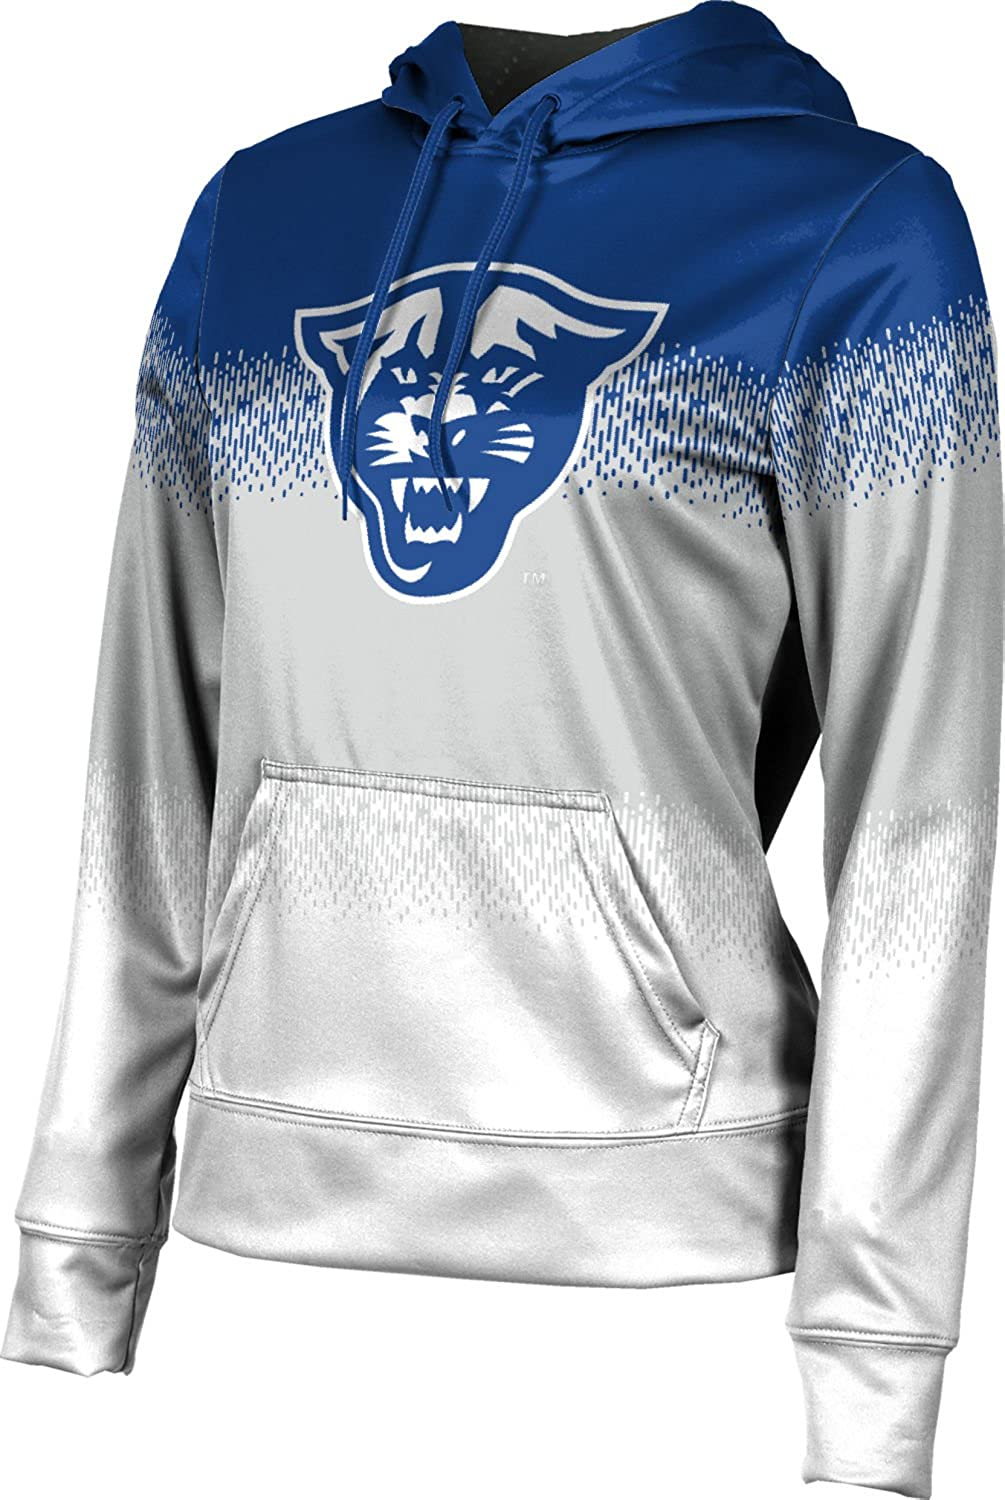 ProSphere Georgia State University Girls' Hoodie Sweatshirt - Drip